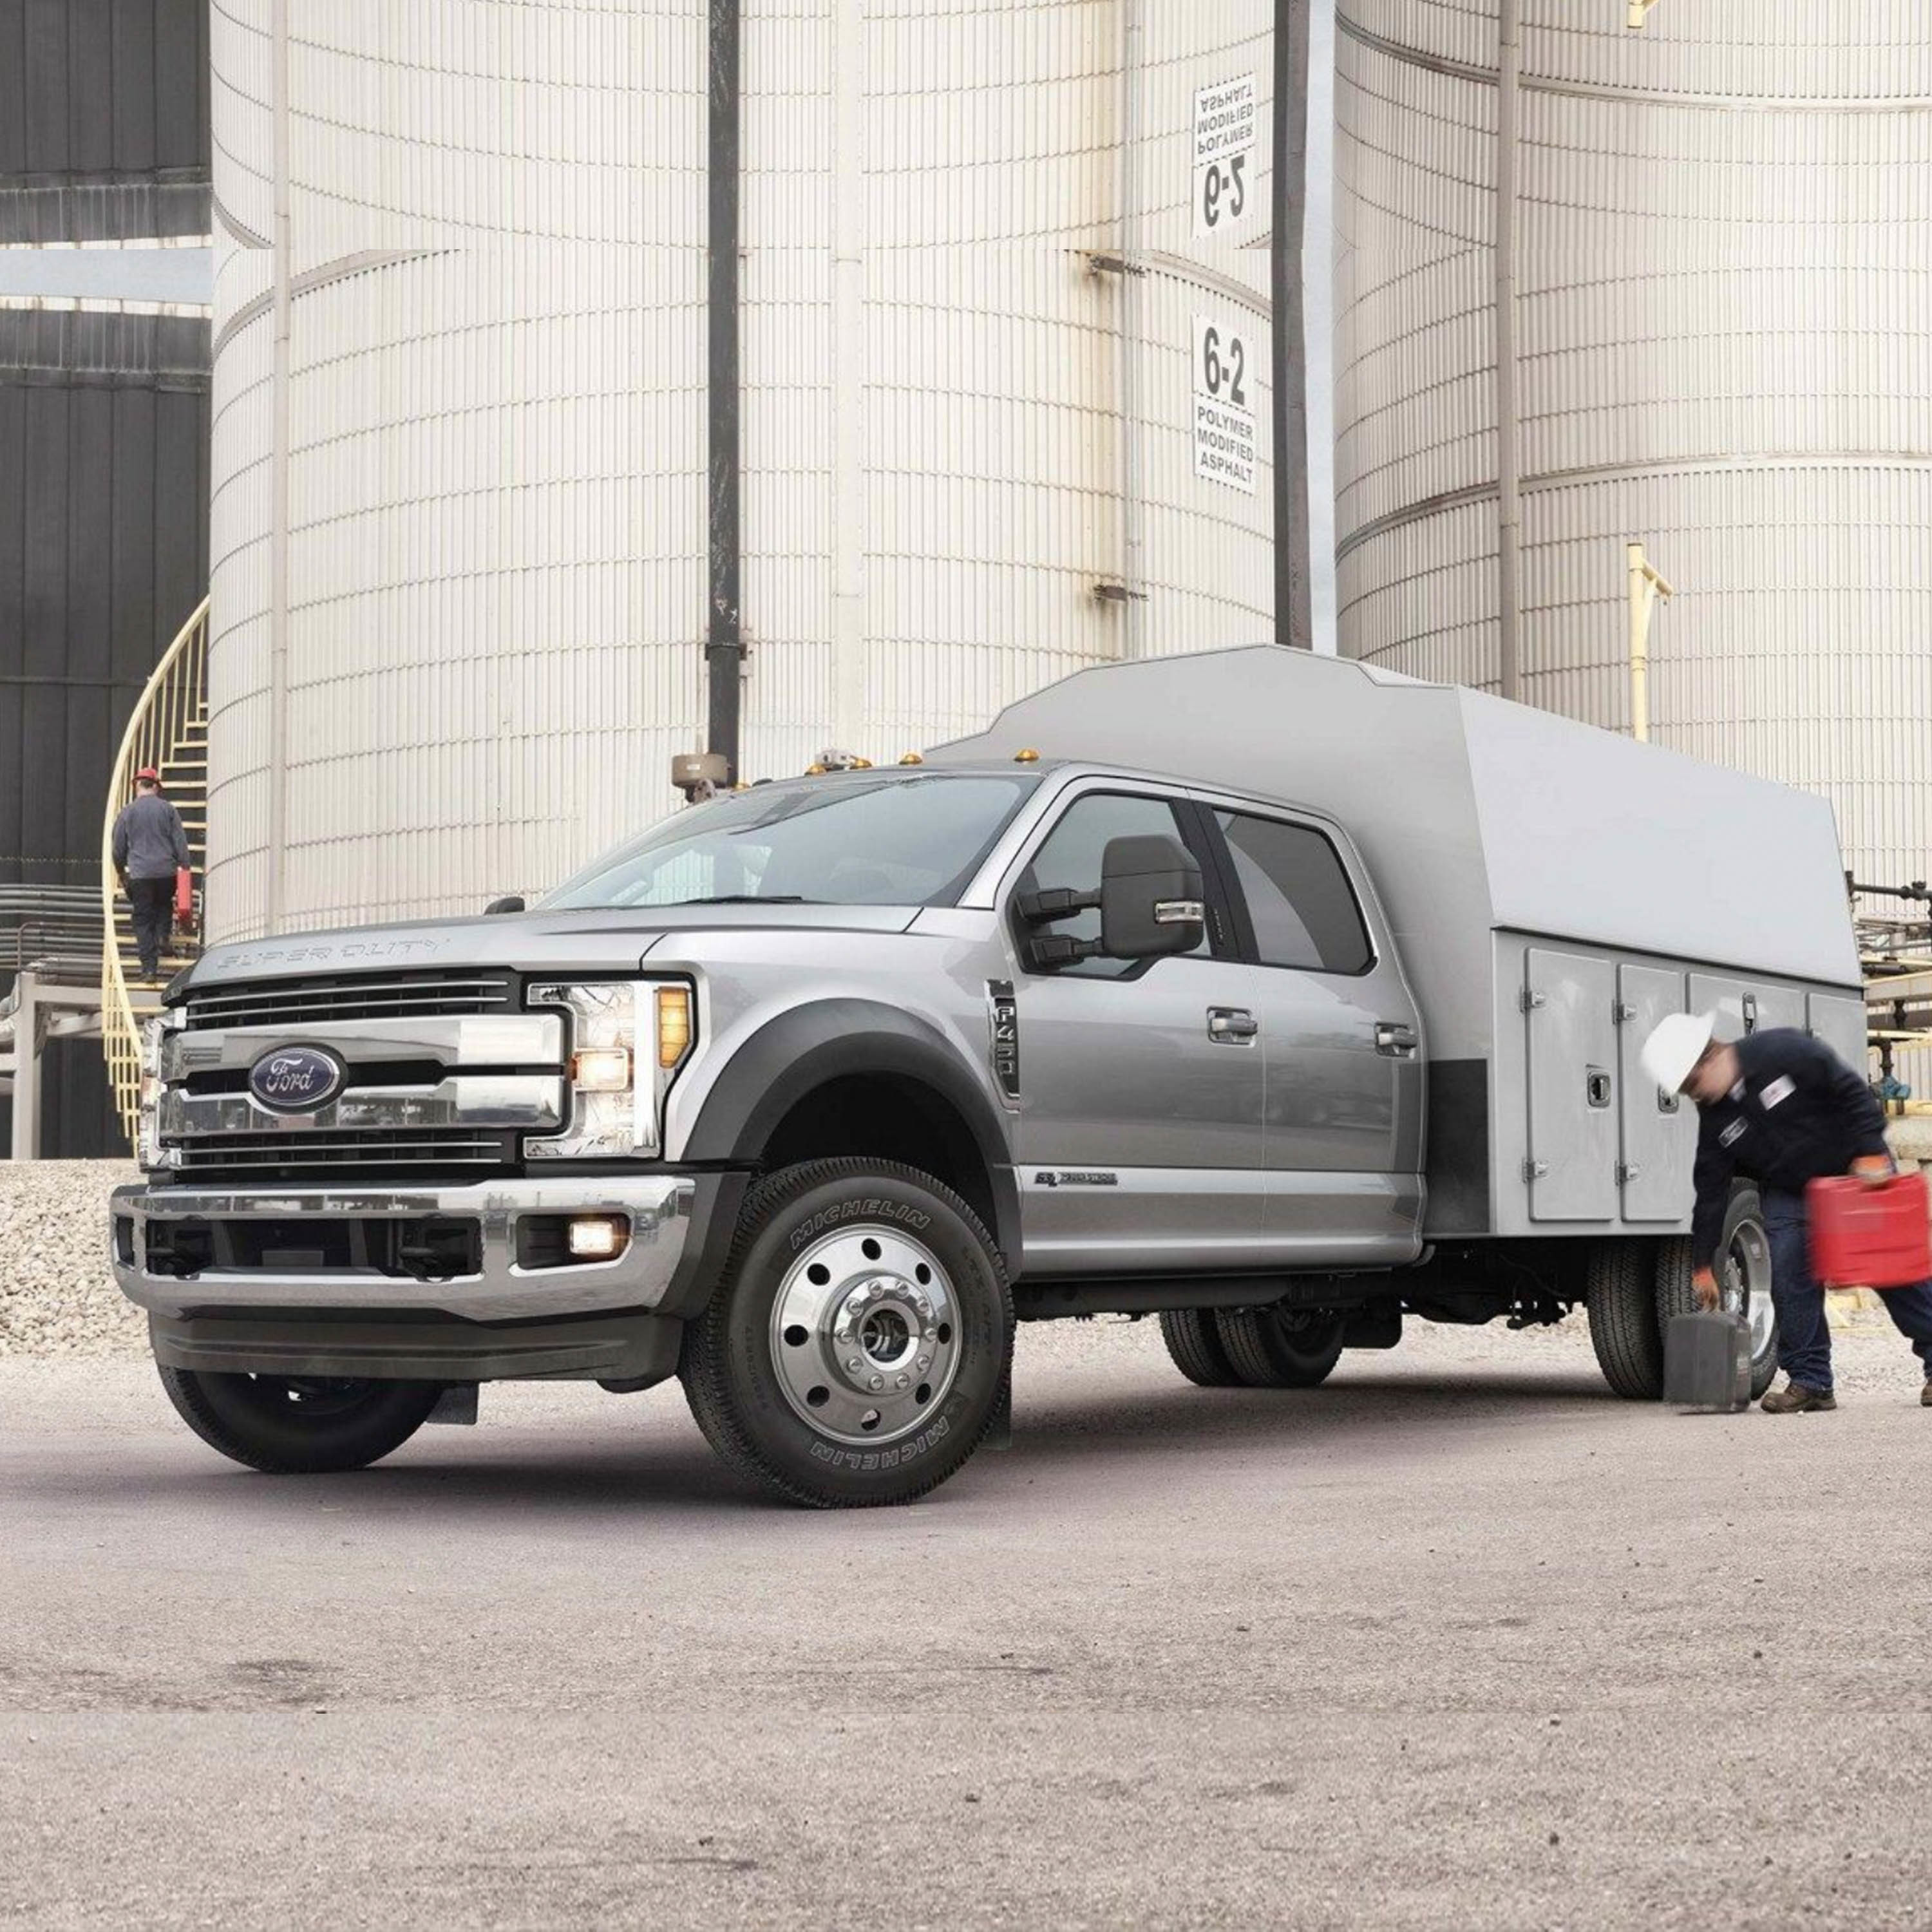 2019 Ford Commercial Super Duty Chassis Cab Your Local Ford Dealer Near Me Joe Cotton Ford